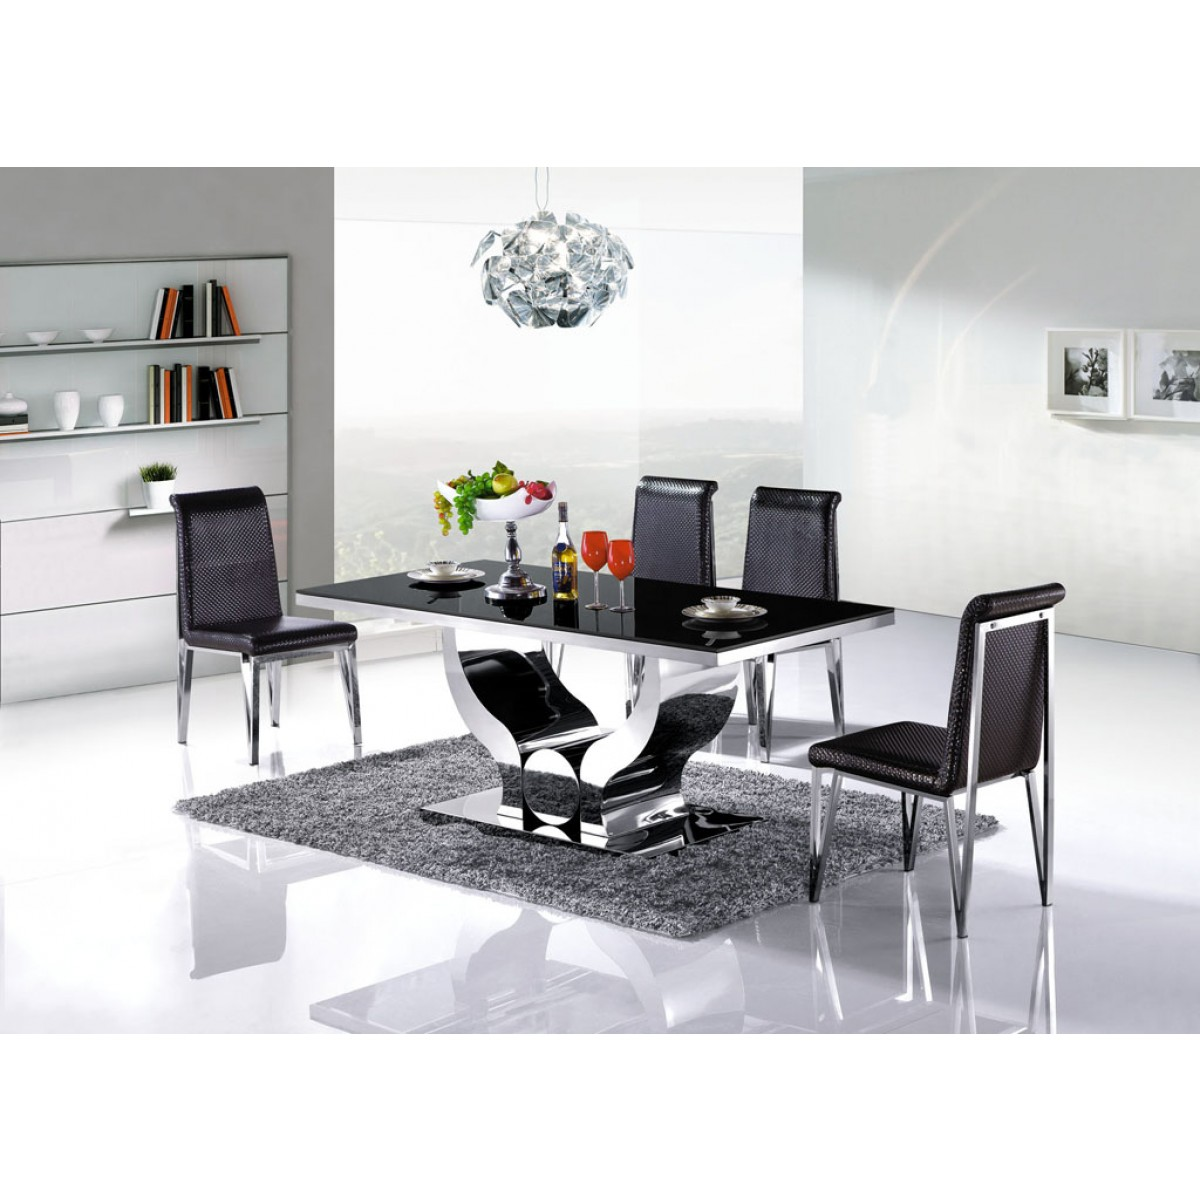 Table de salle manger en inox nova pop for Table salle a manger en marbre design